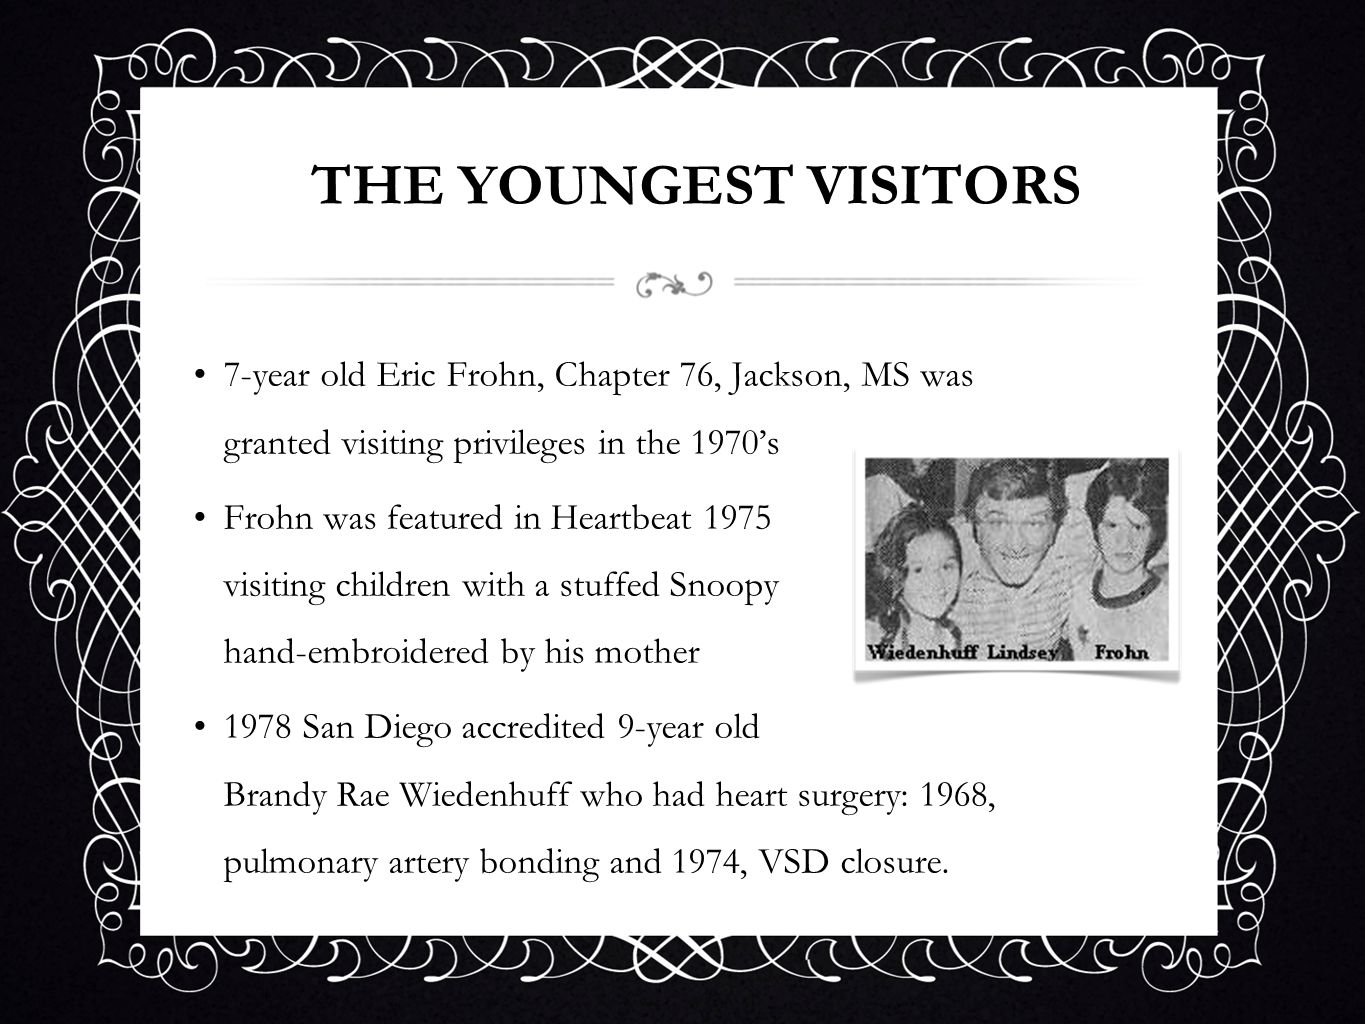 THE YOUNGEST VISITORS7-year old Eric Frohn, Chapter 76, Jackson, MS was granted visiting privileges in the 1970's.